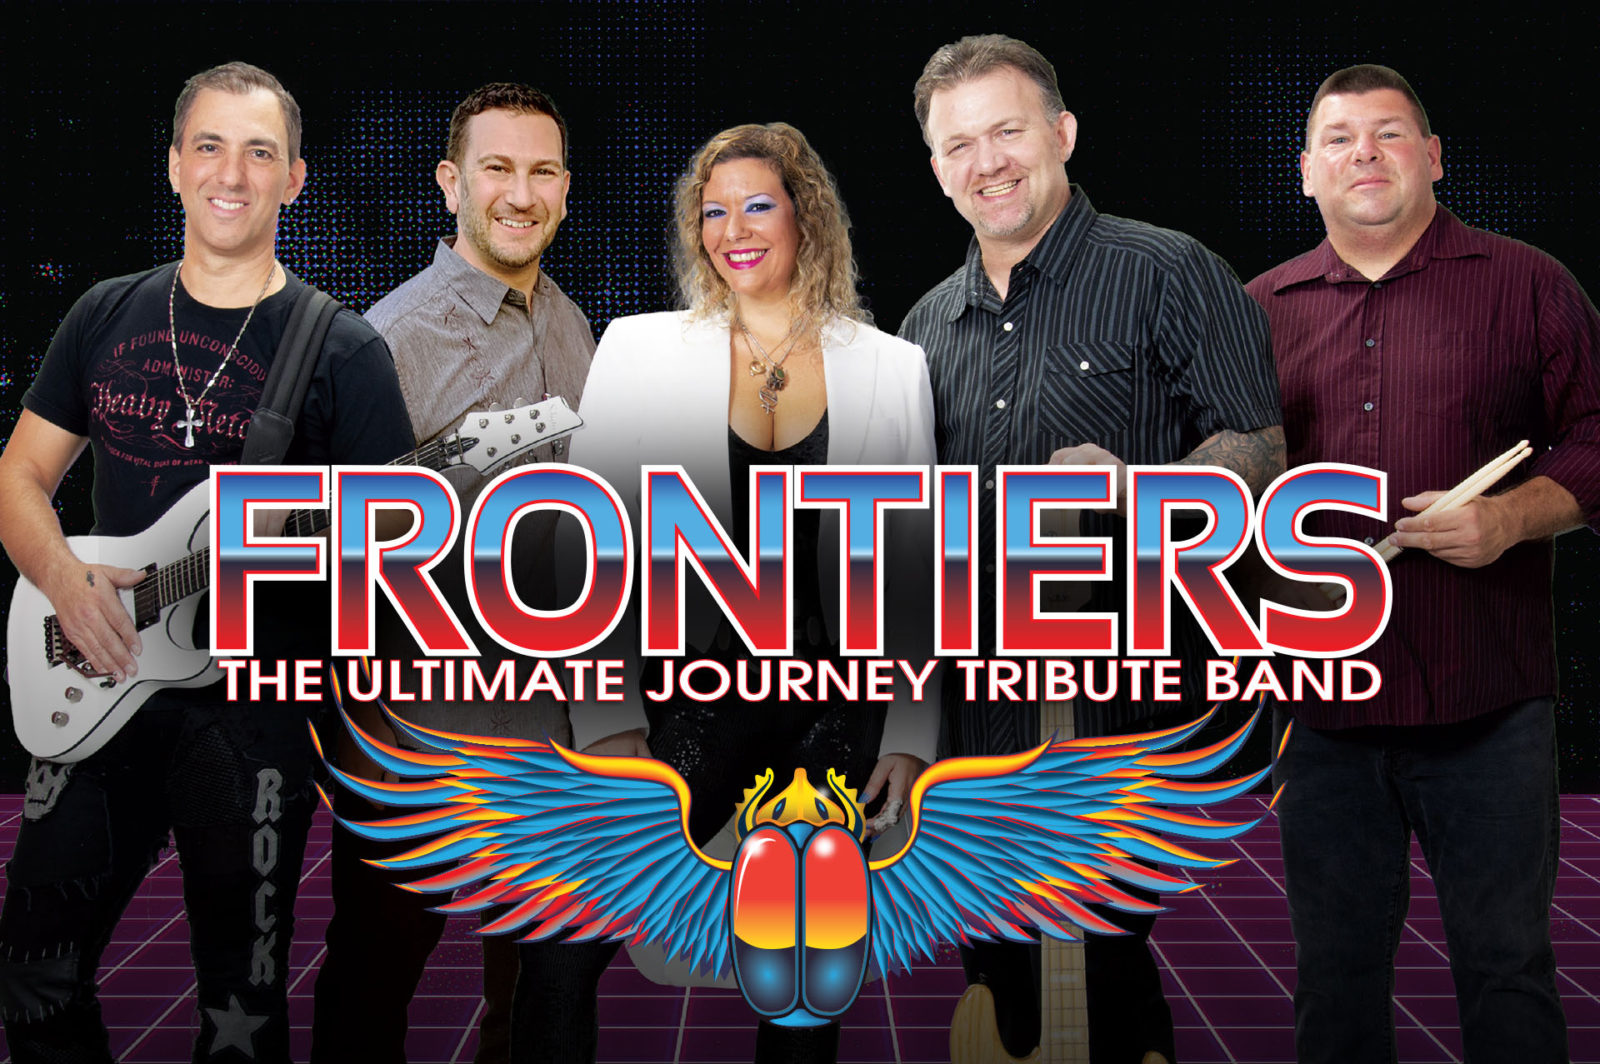 frontiers-homepage-02